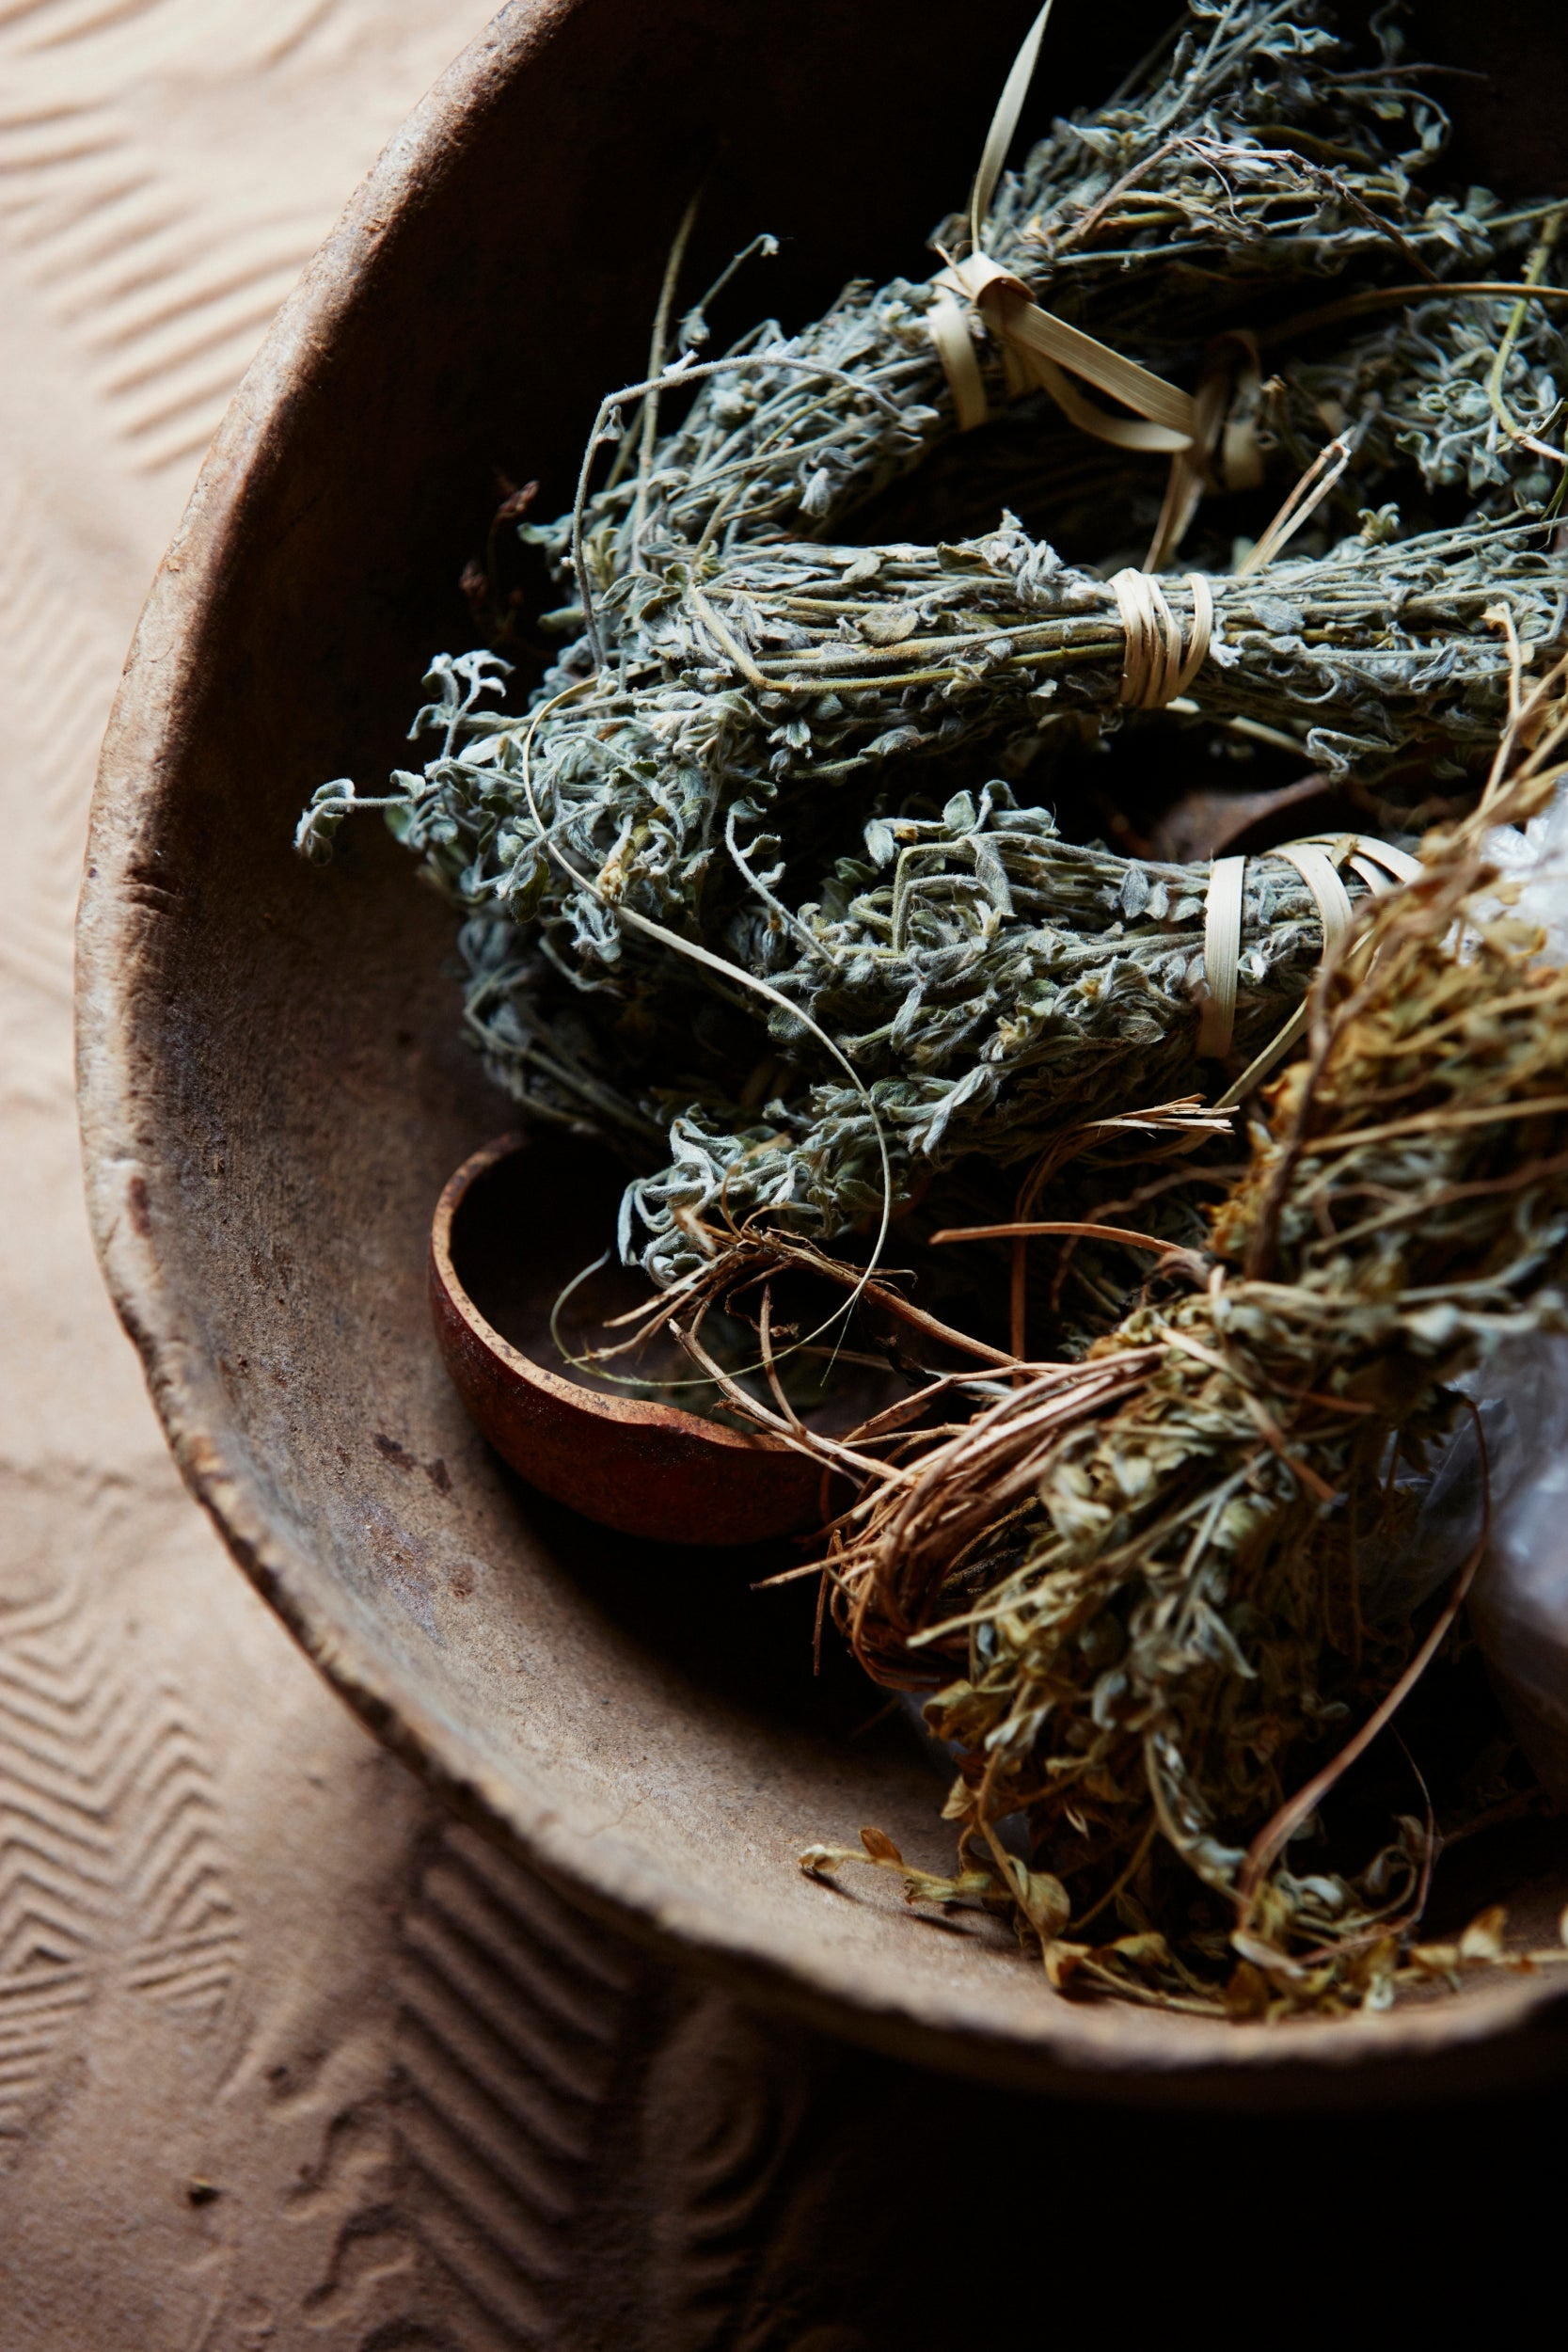 Herbs dry in the entrance to Aissa's home